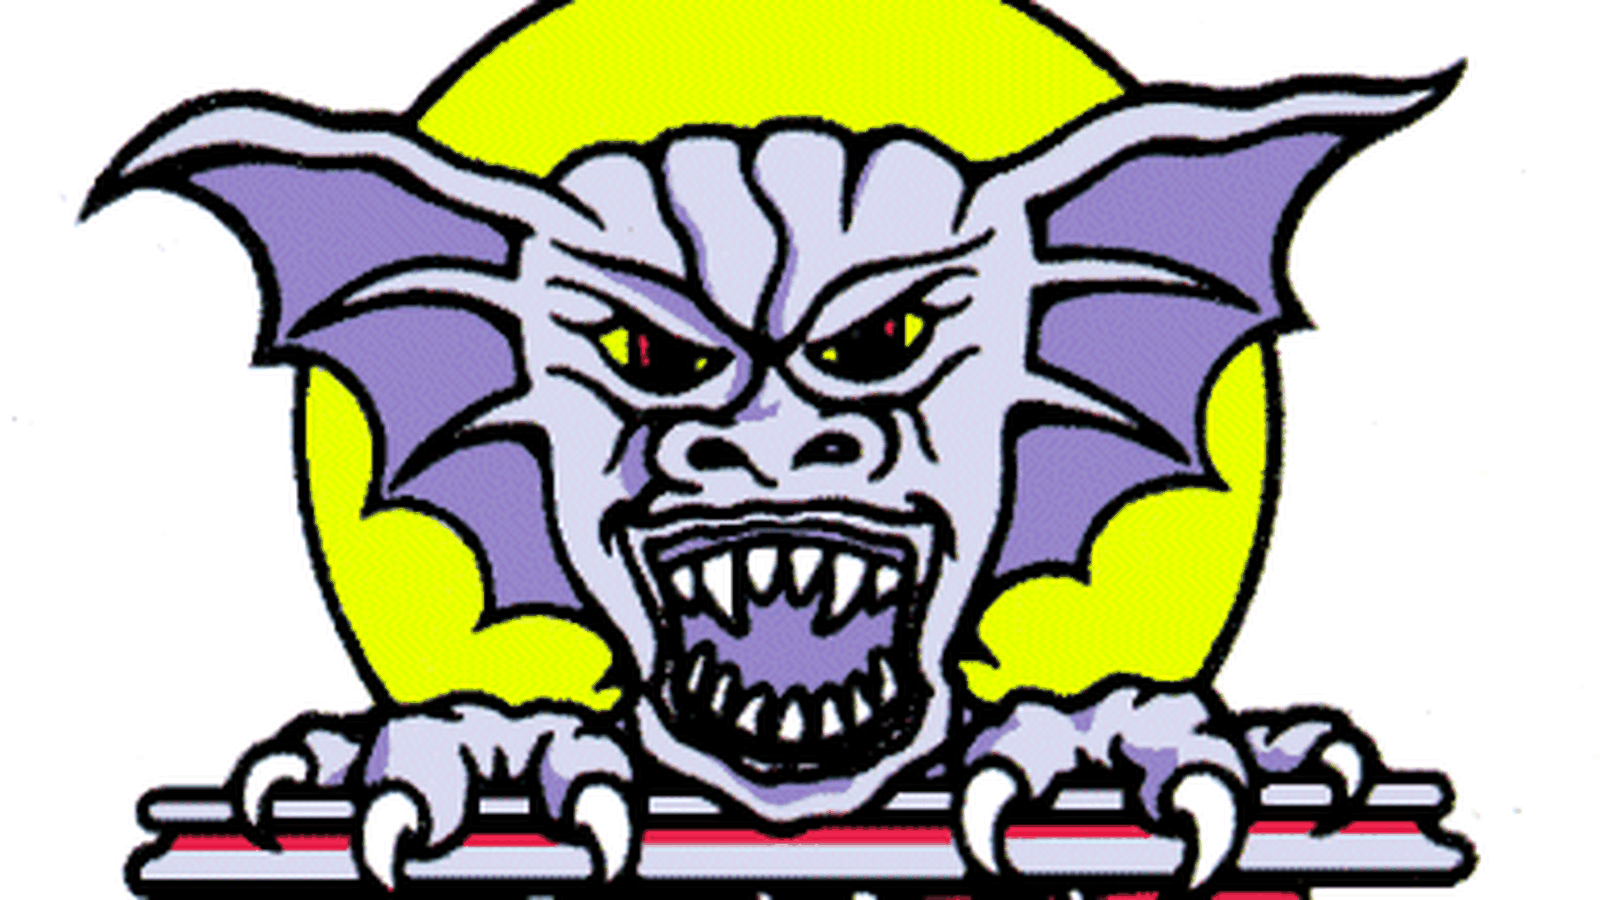 This late-90s minor league hockey team had the worst logo you?ll ever see